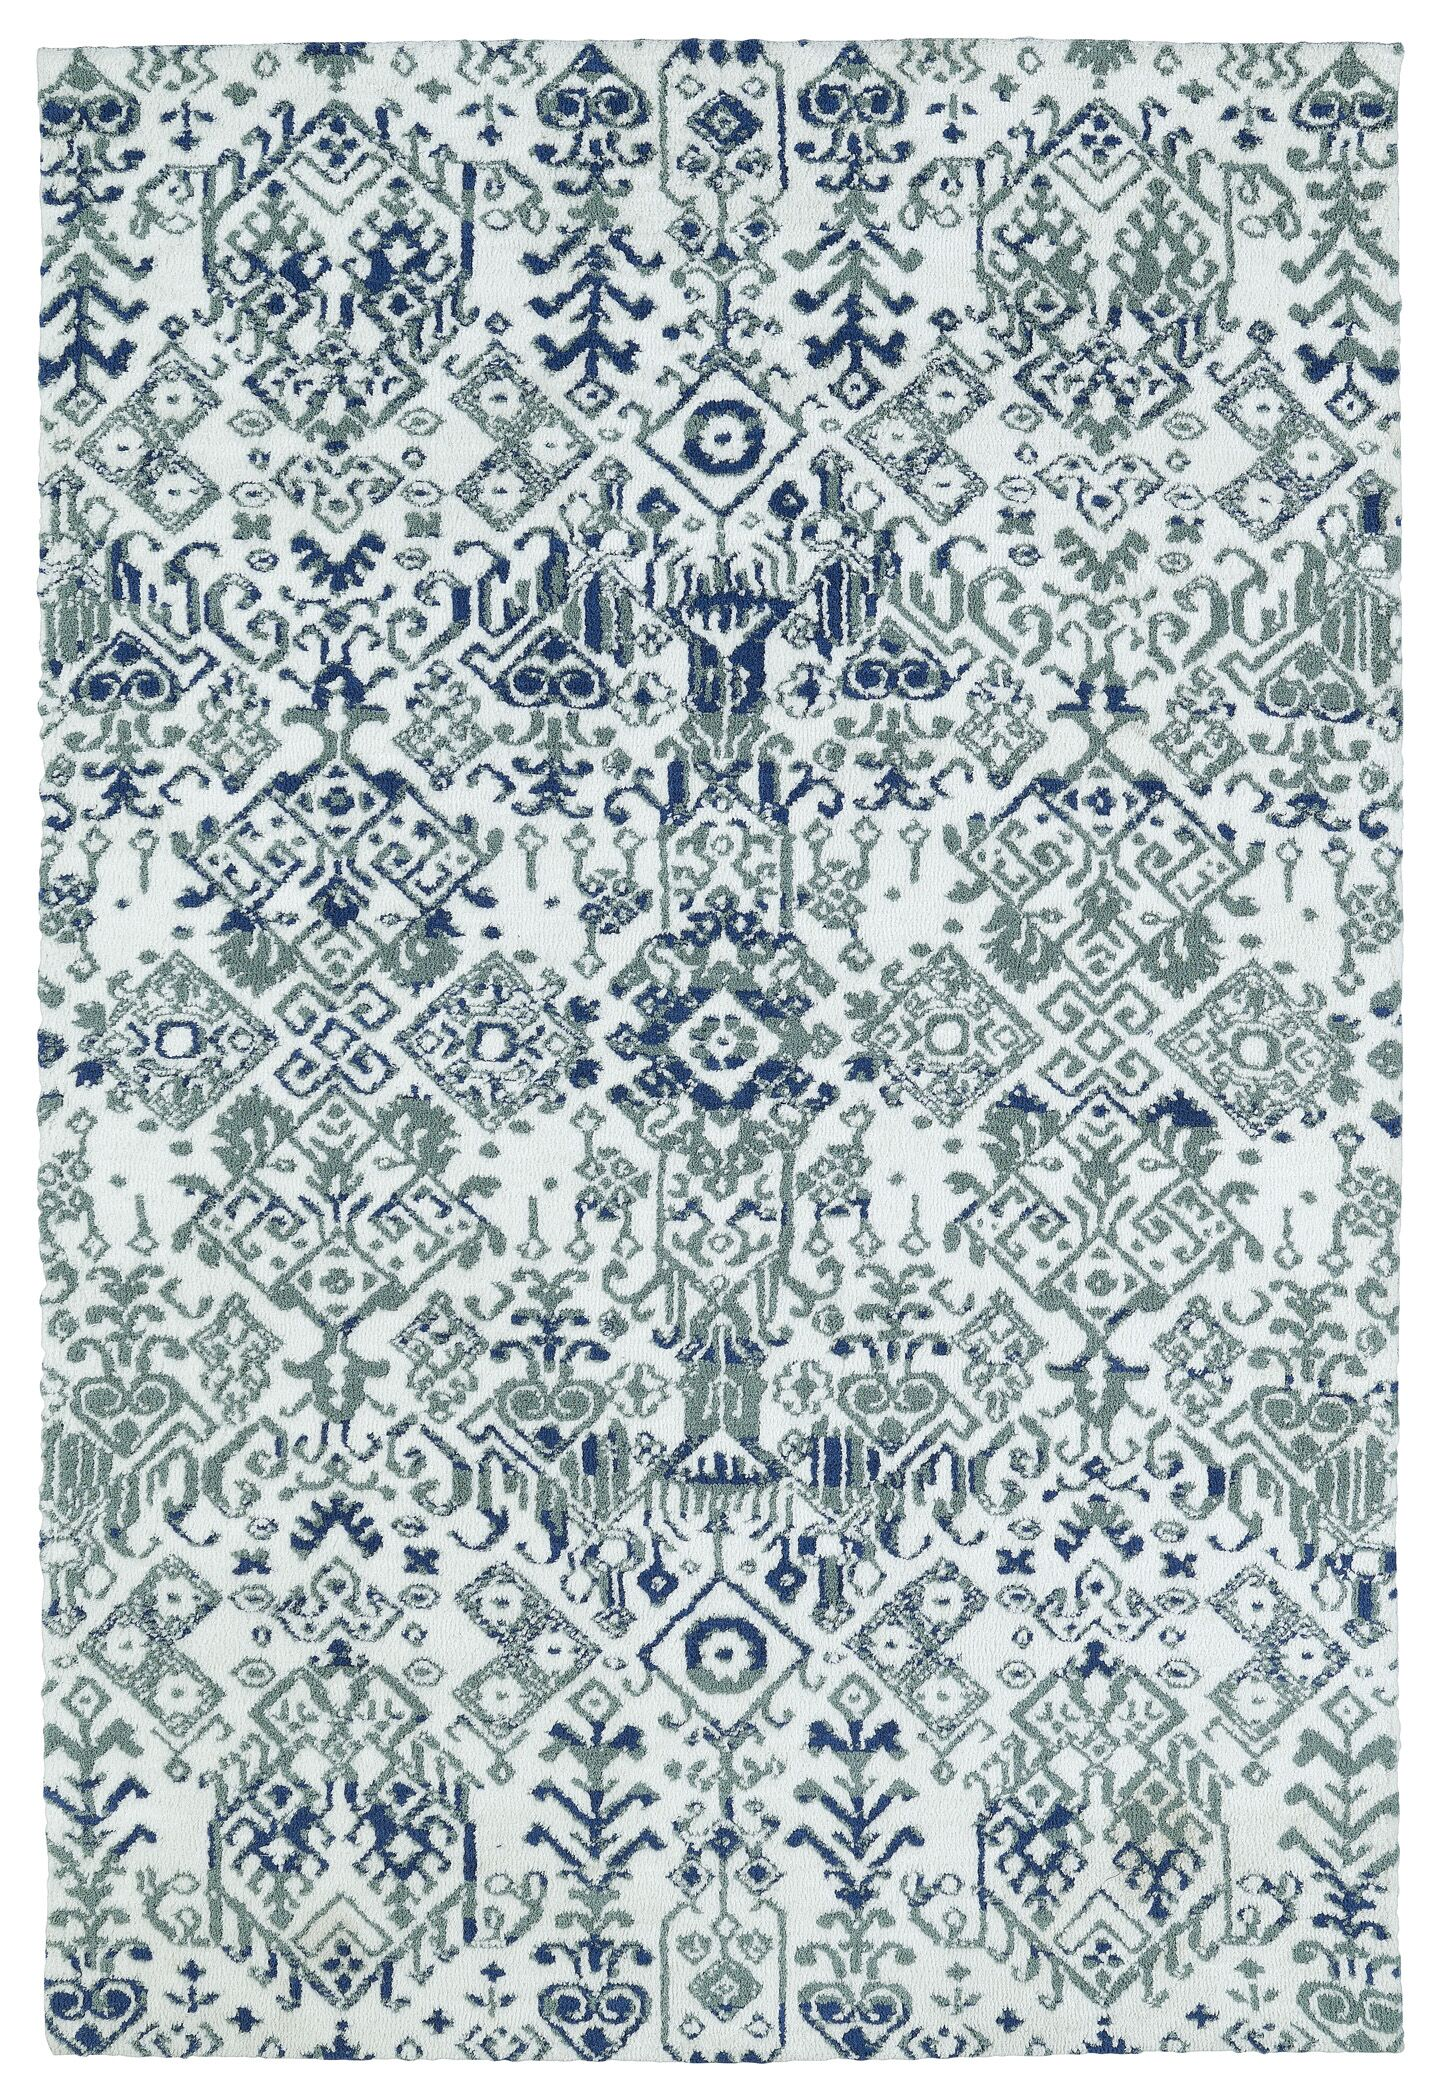 Rodgers Ivory Area Rug Rug Size: Rectangle 5' x 7'